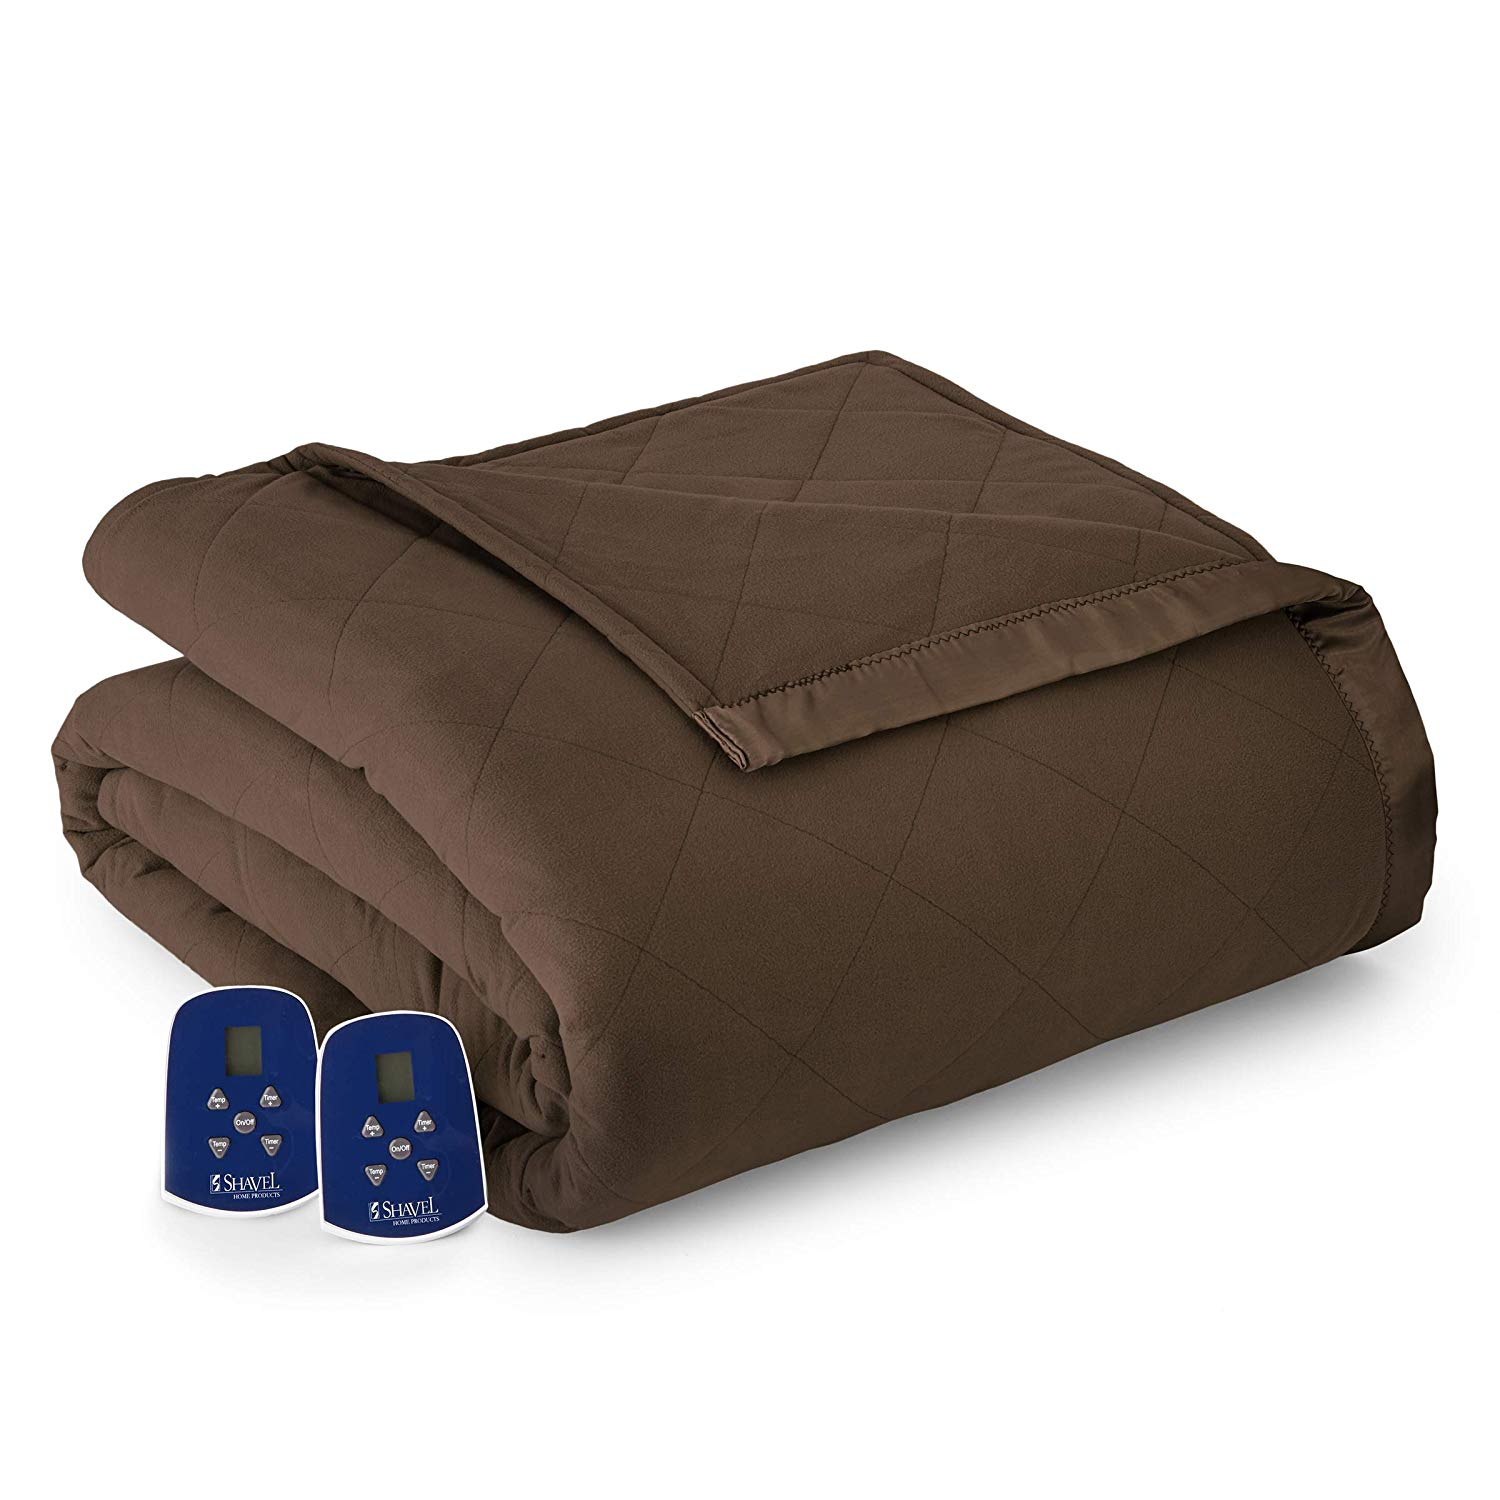 Shavel Home Products Best Electric Blanket Review by www.snoremagazine.com